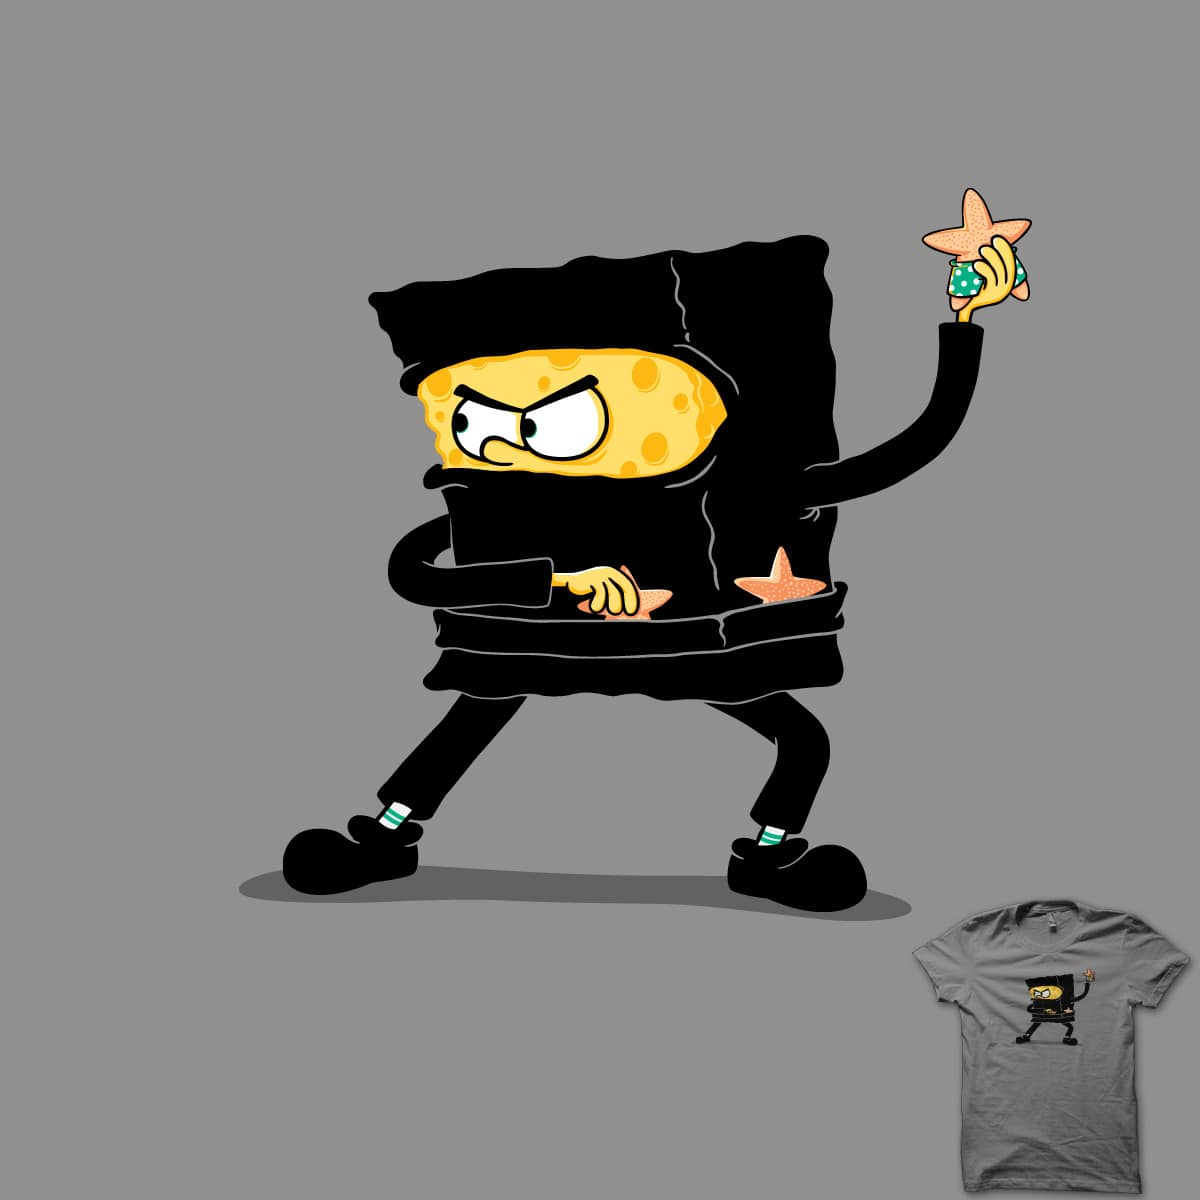 Square Ninja by triagus on Threadless